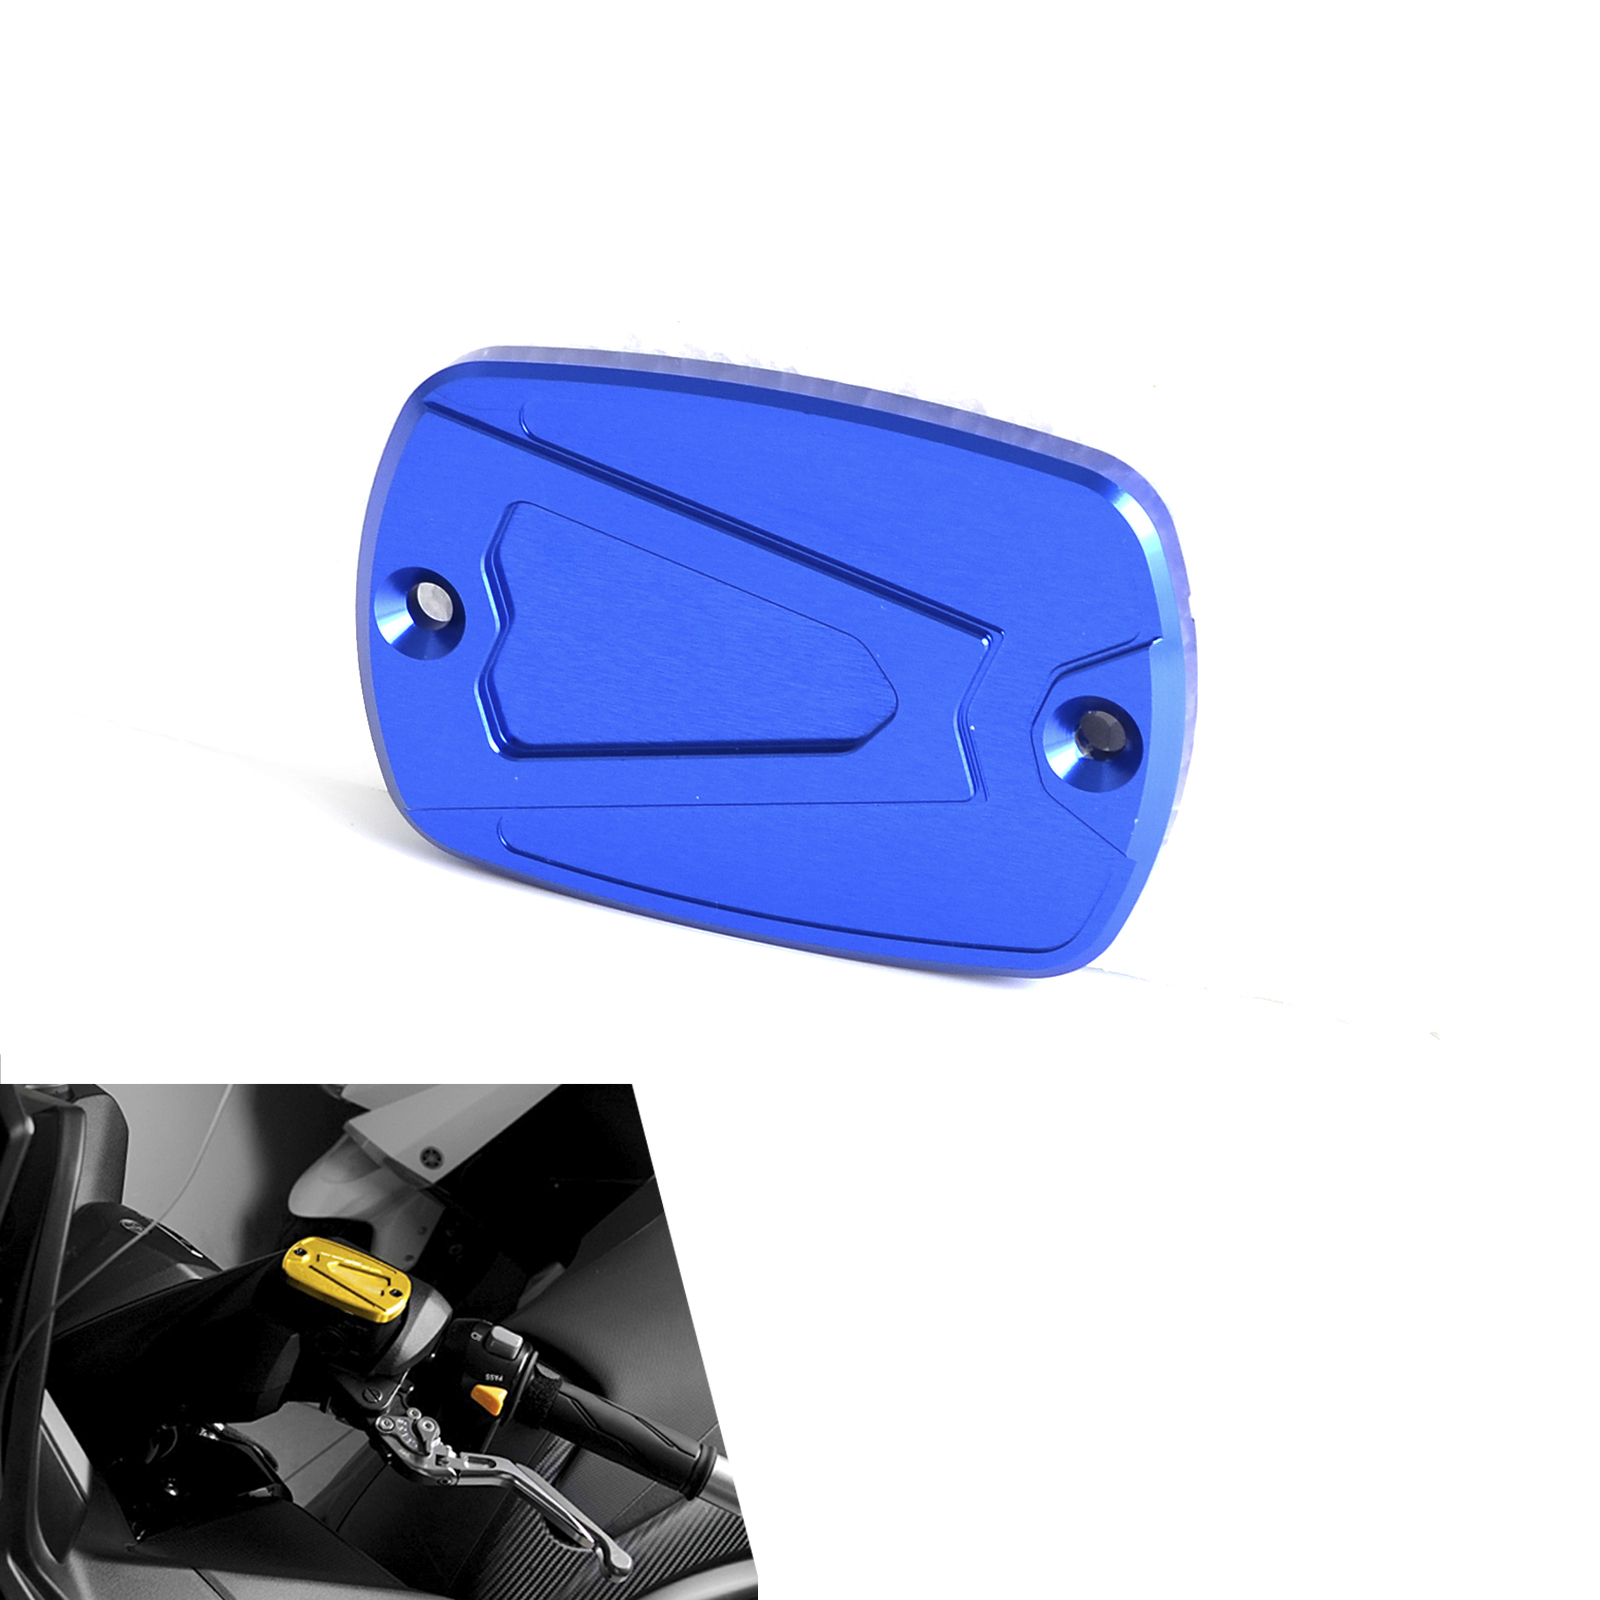 NEW Motorcycle CNC Front Master Cylinder Brake  Reservoir Cap Cover For Yamaha T-MAX 530 2012 2013 2014 2015 motorcycle cnc front brake fluid reservoir cap cover for yamaha t max 530 500 tmax530 xp530 2012 2016 tmax500 xp500 2008 2011